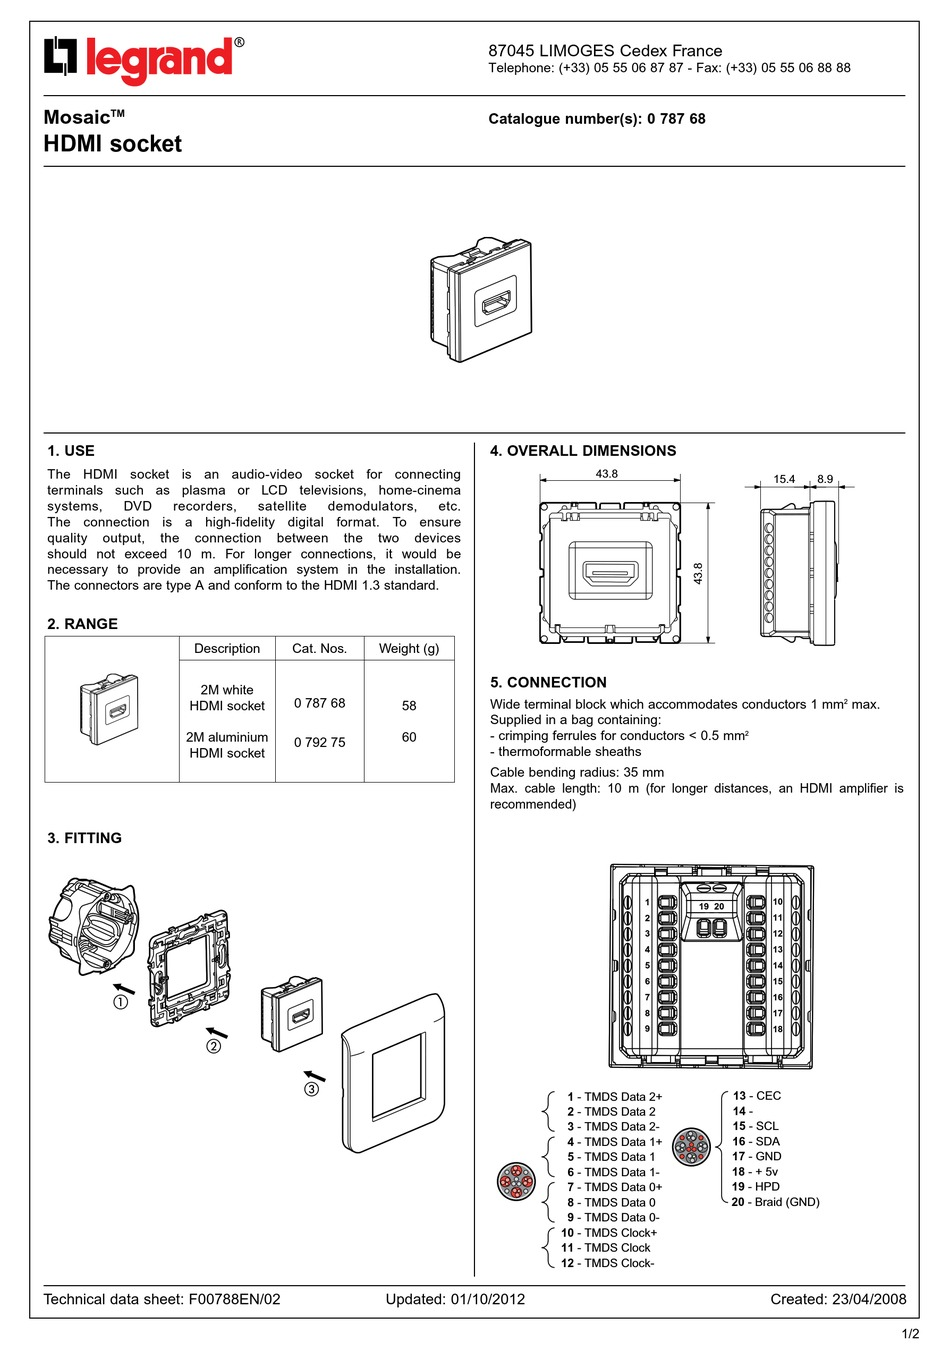 legrand mosaic technical data sheet pdf